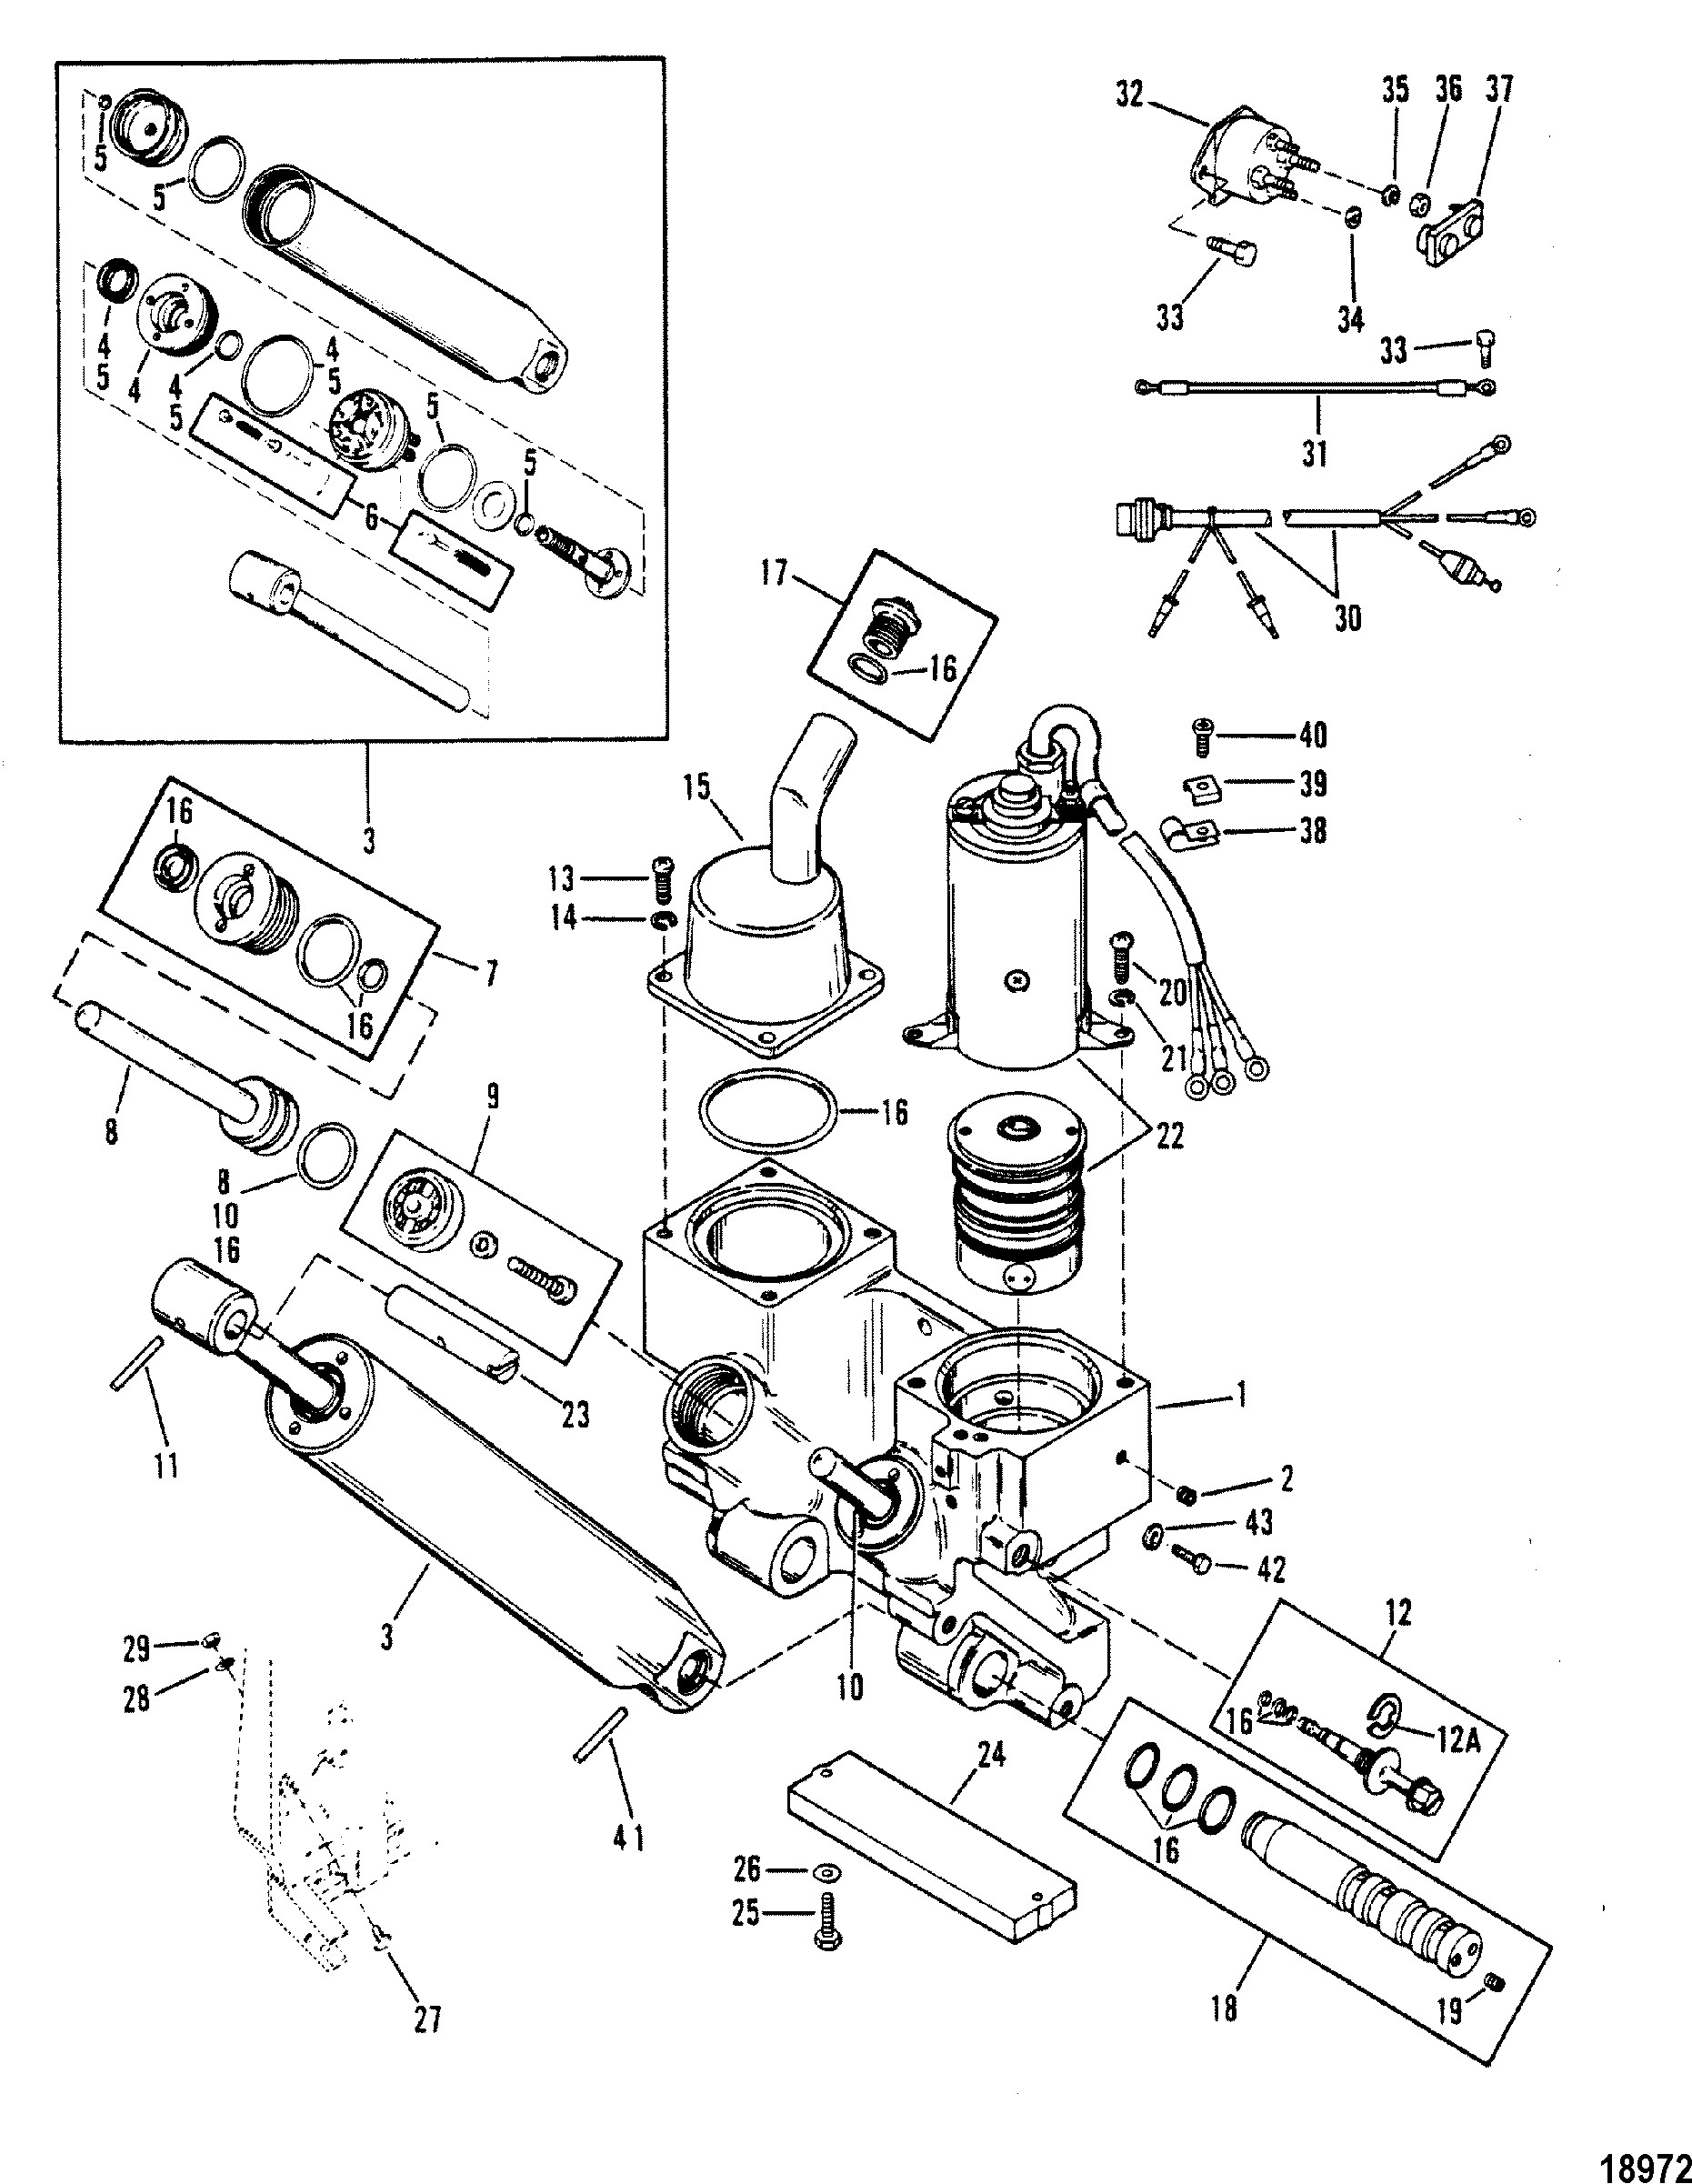 hight resolution of power trim ponents for mariner mercury 90 115 h p inline mercury outboard power trim wiring diagram